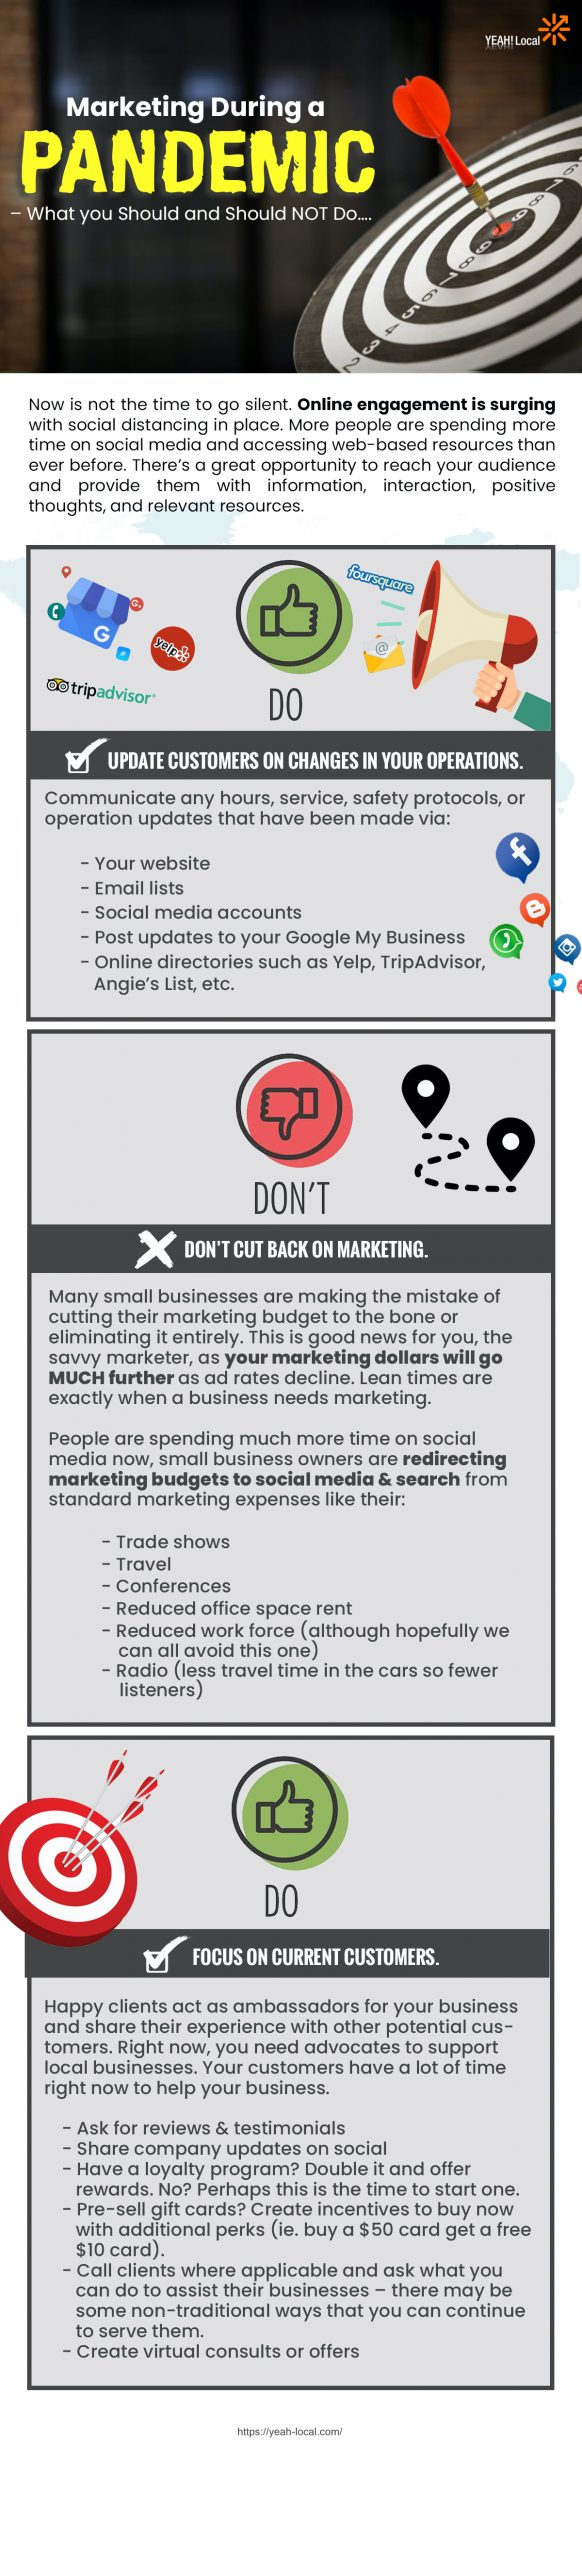 Marketing During a Pandemic What you Should and Should NOT Do